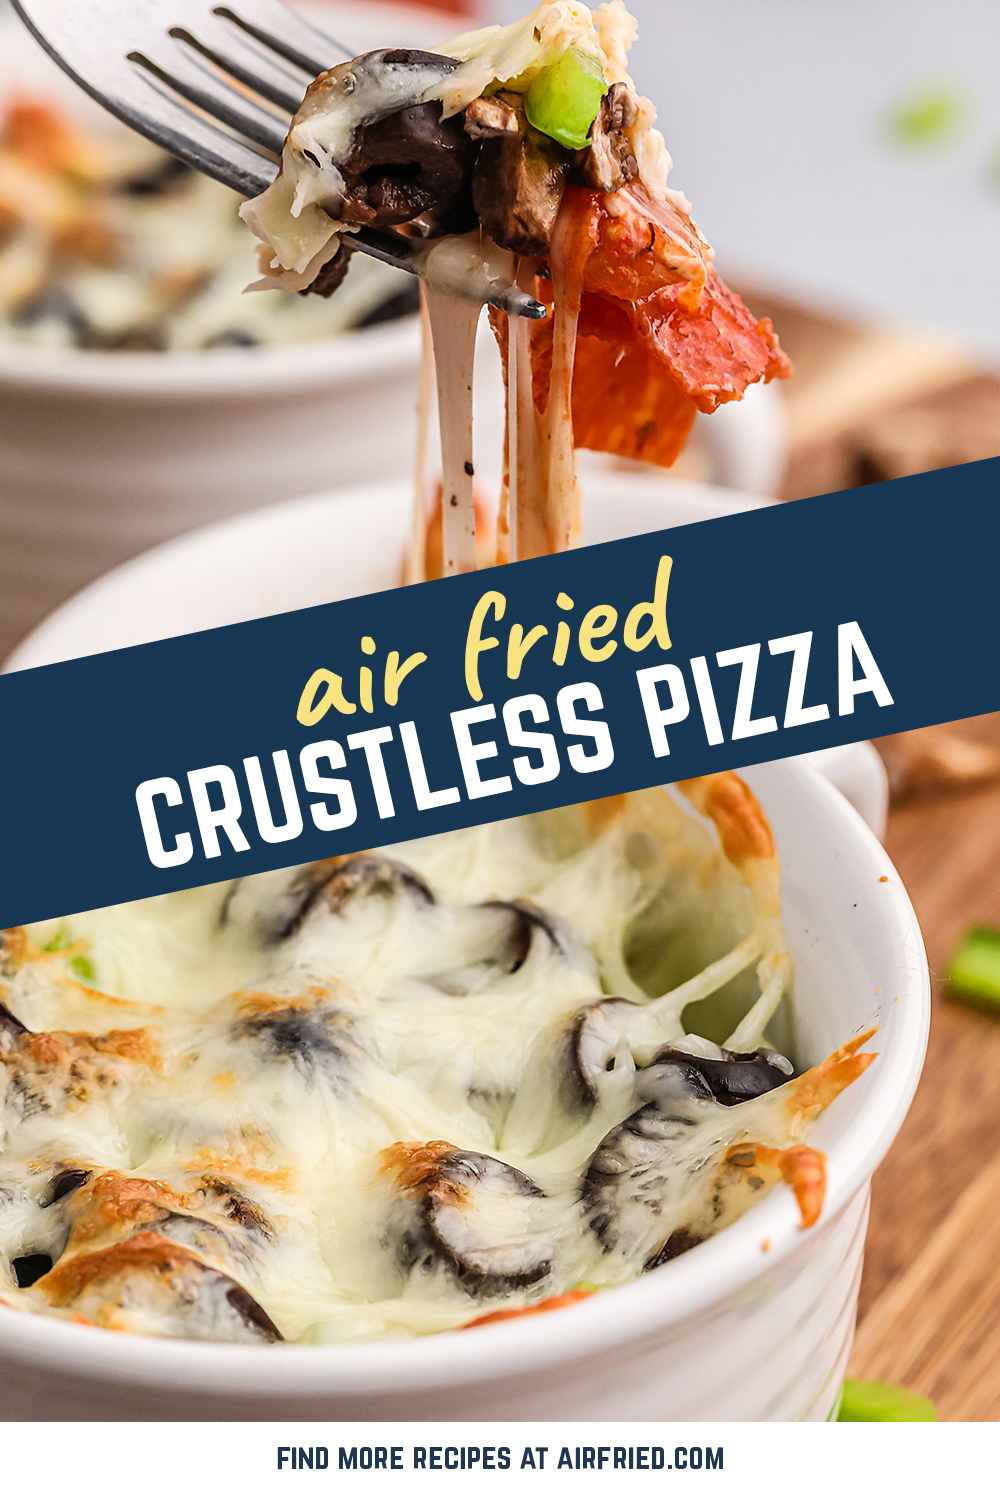 This recipe for a crustless pizza is exactly what I needed for my keto friendly meal plan!